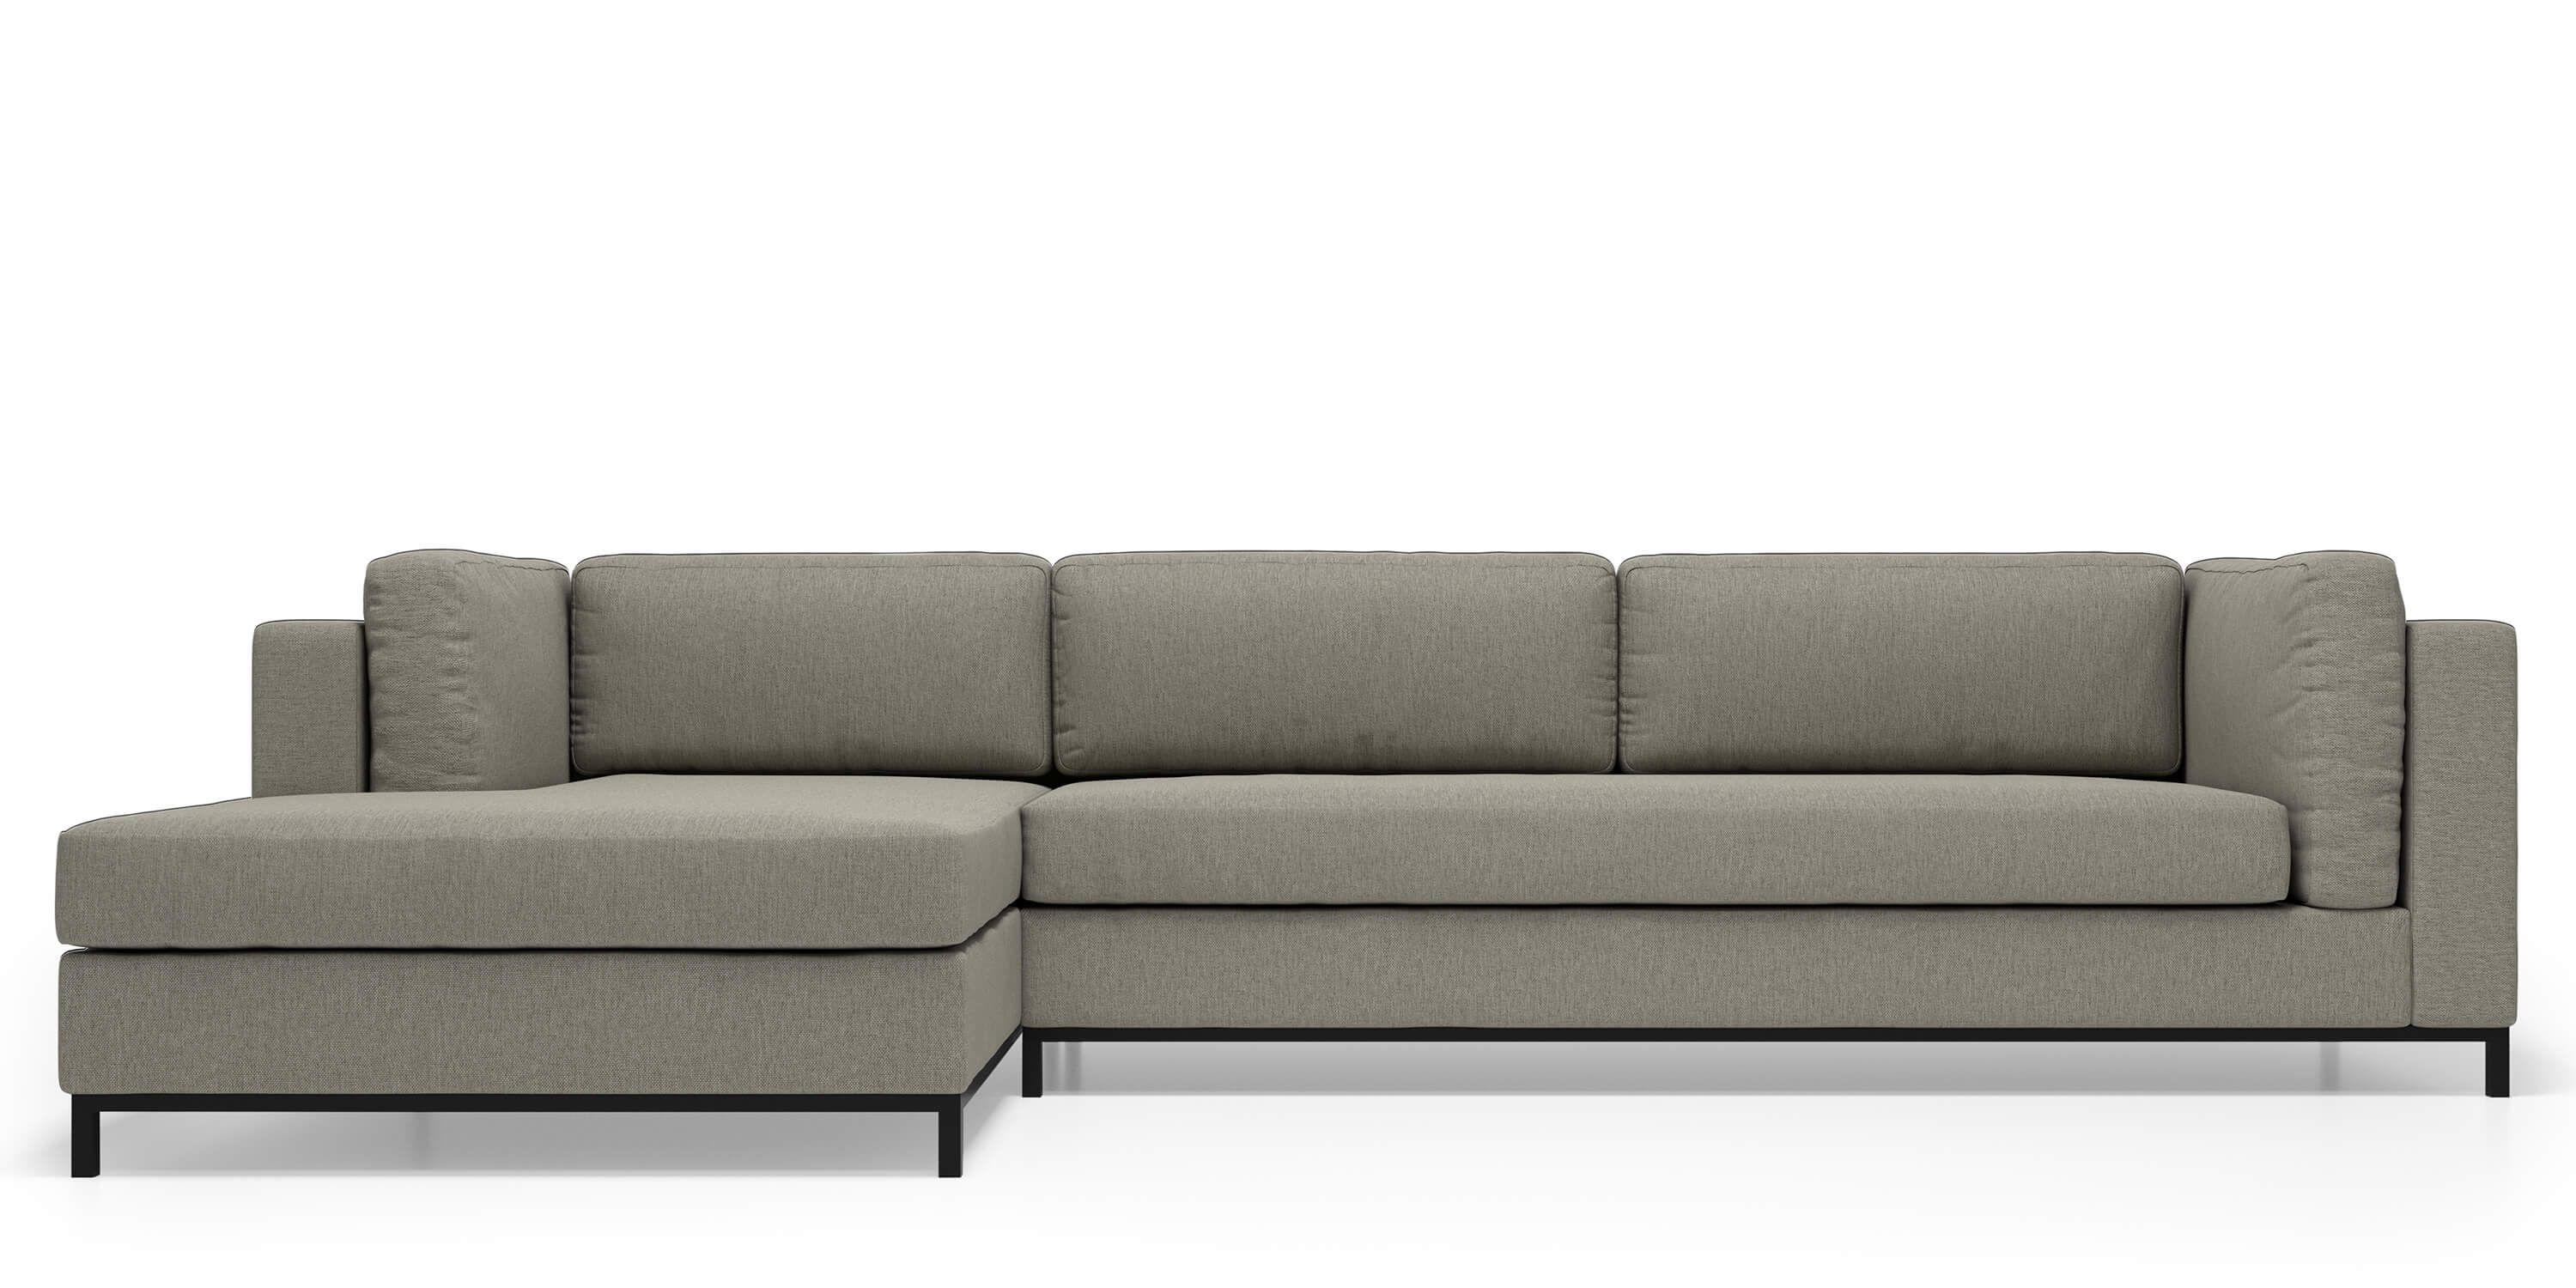 Kohlman Sofa Sectional in Grey Goose Fabric by Kavuus